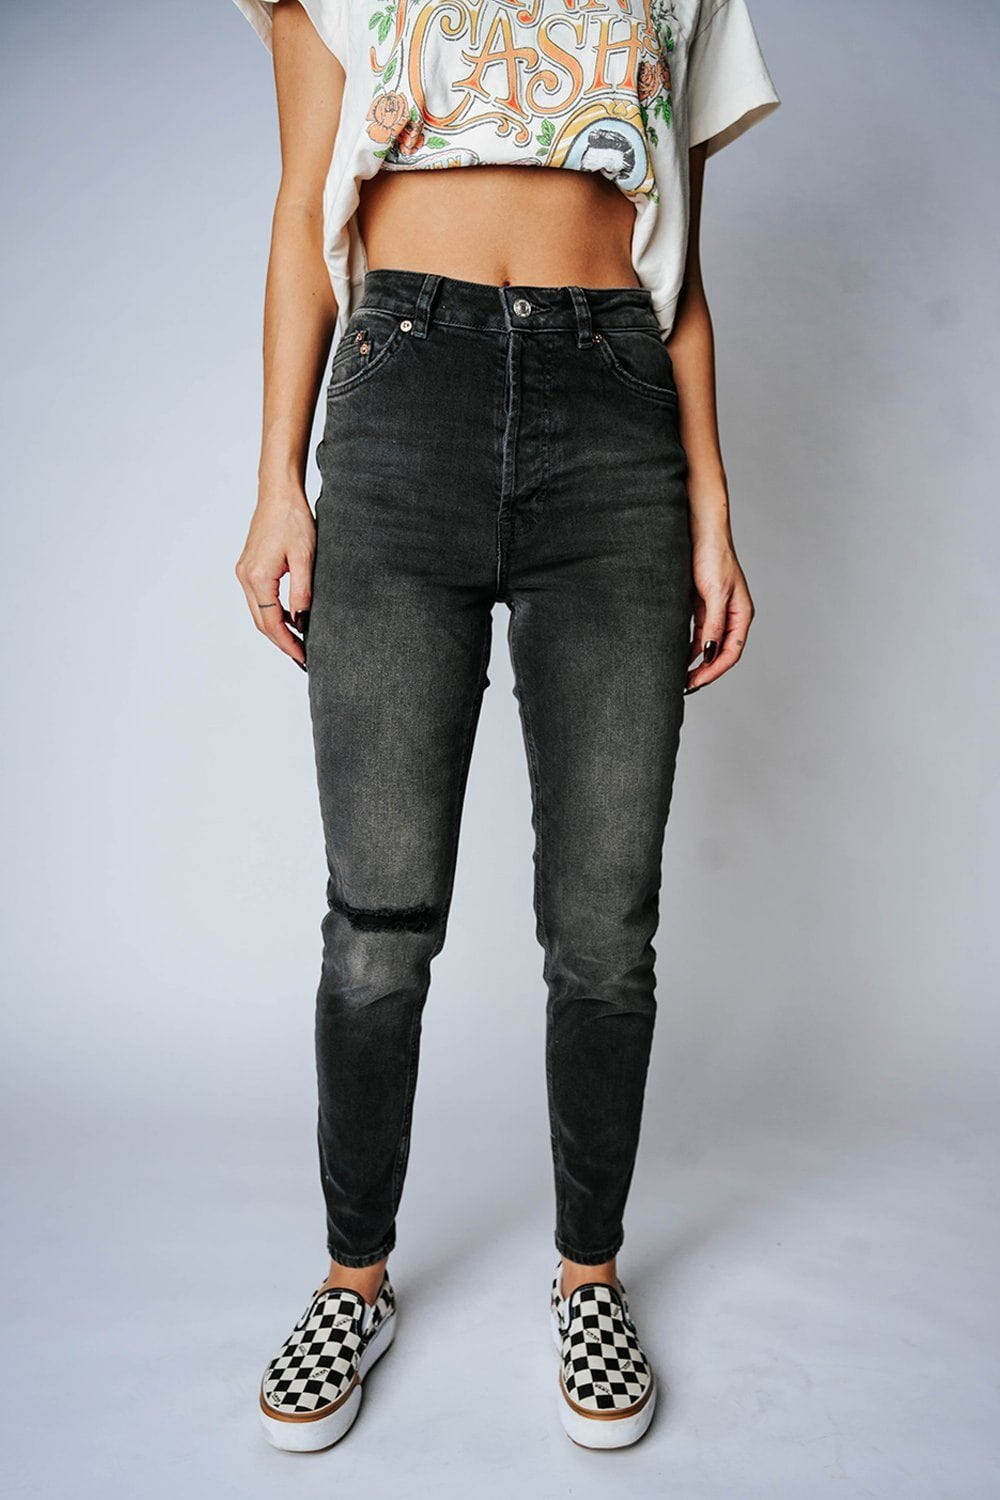 Free People Zuri Mom Jeans in Dusty Roads, cladandcloth, Free People.